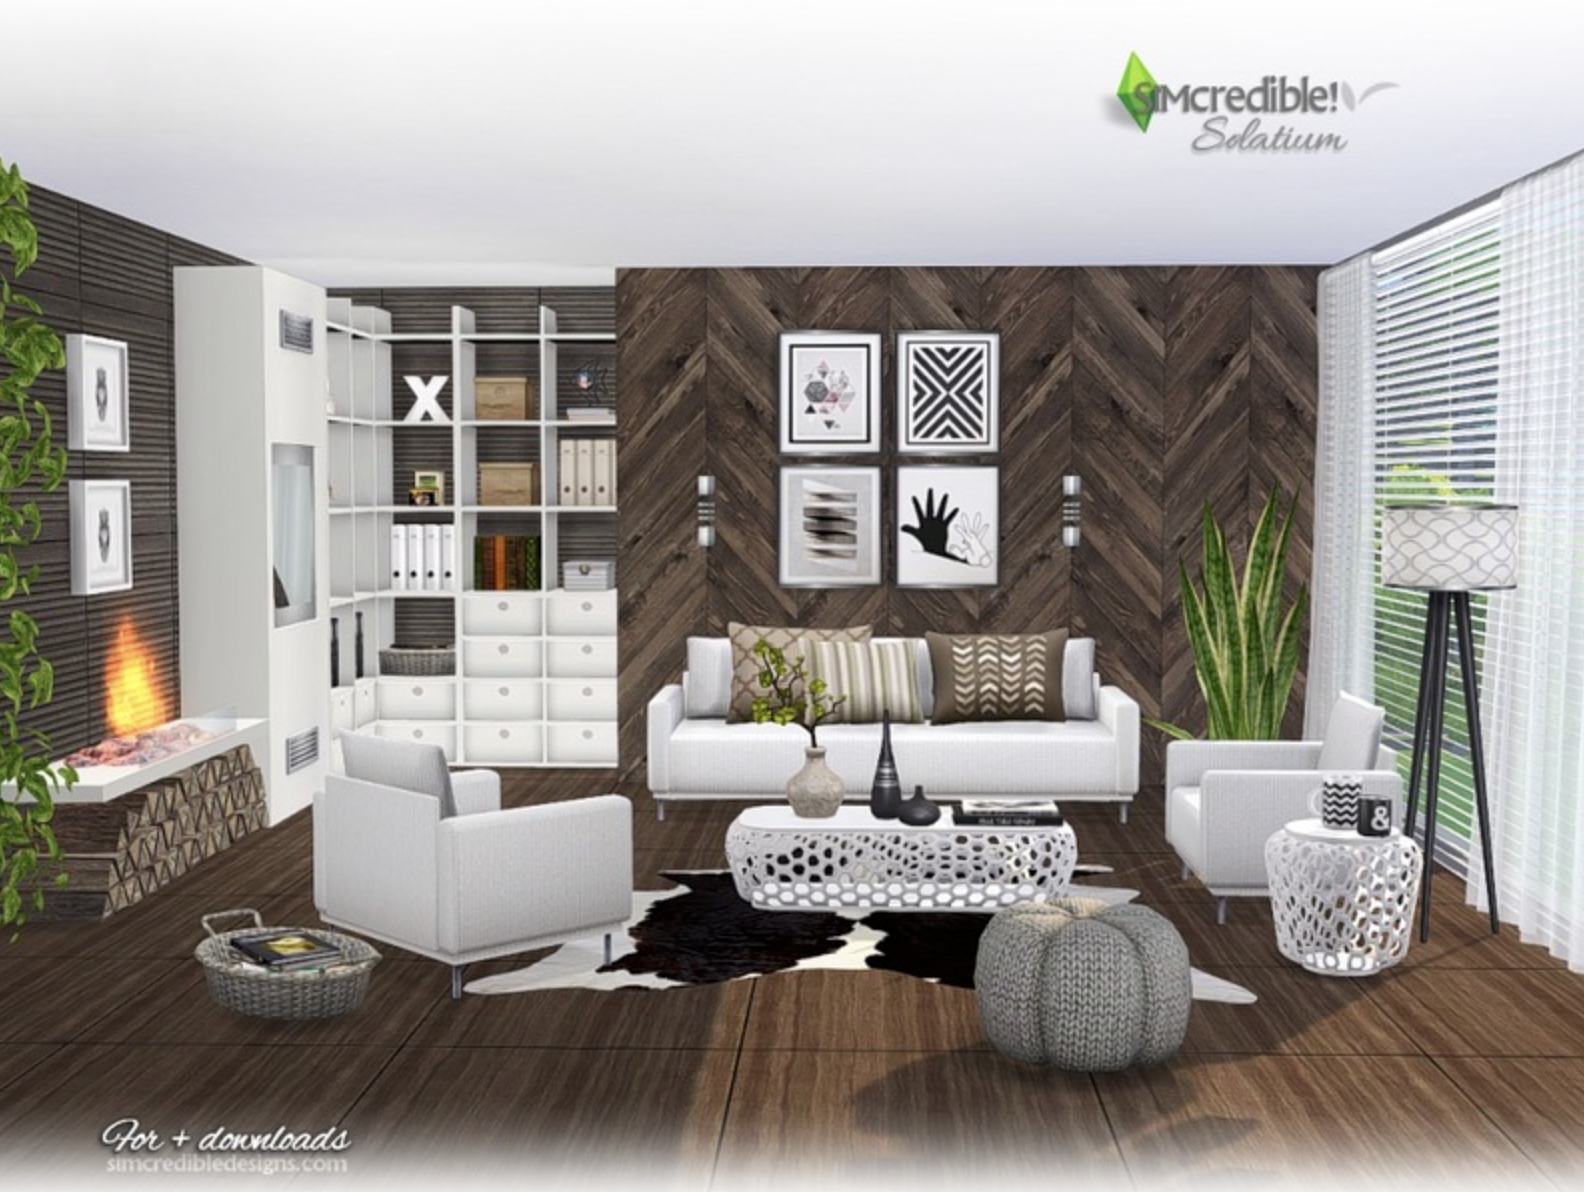 Pin by CHIC on CC for Deirdre | Living room sims 4, Sims 4 ...